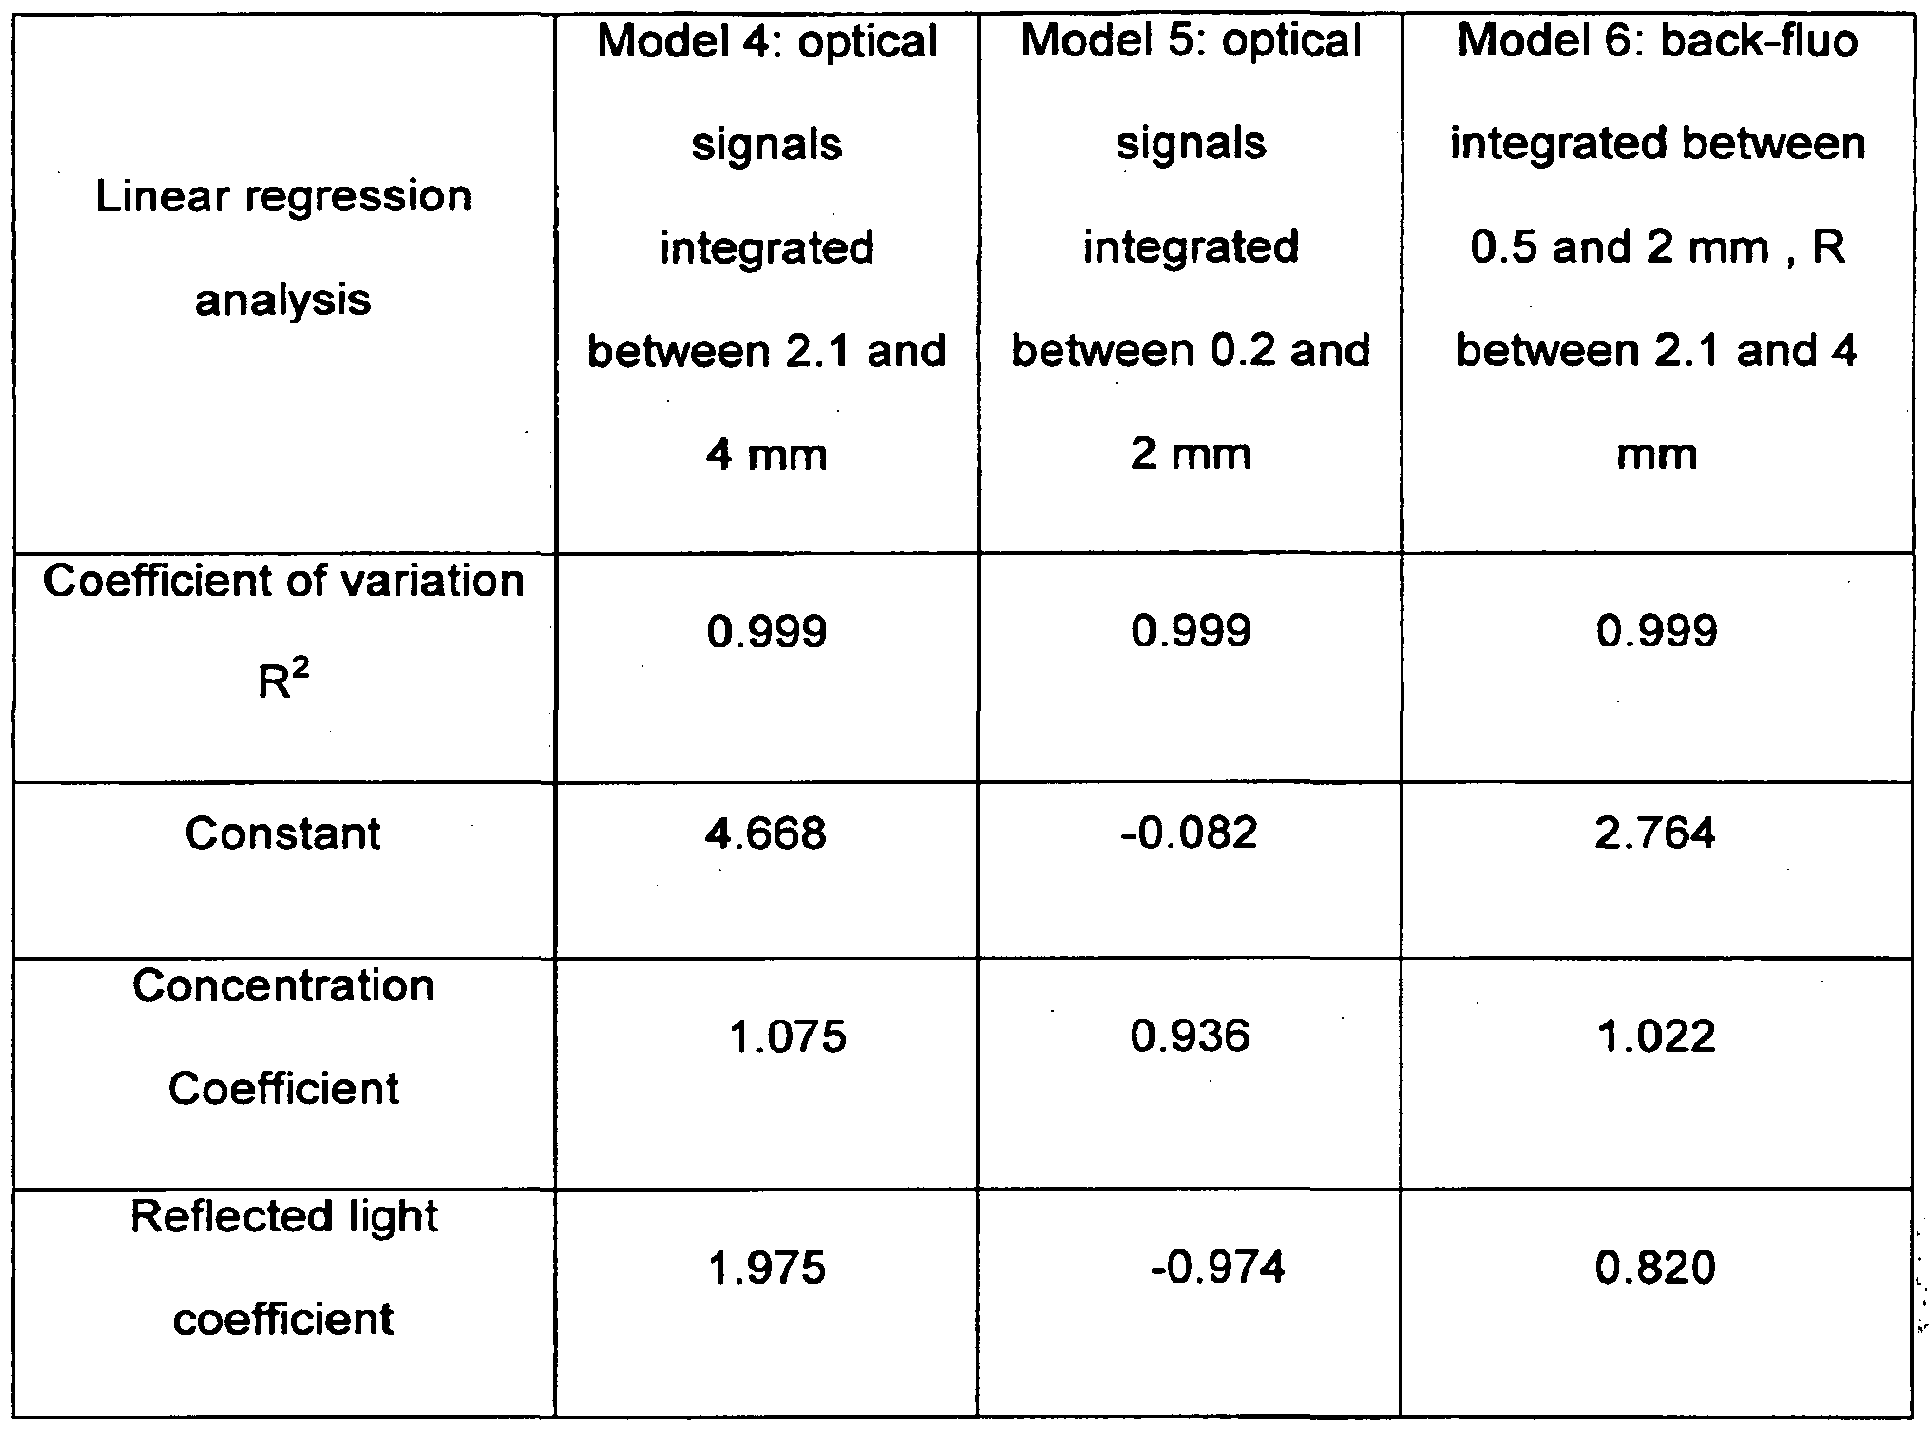 Nuclear Medicine Fitting A Non Linear Equation To Data By Linearizing Images